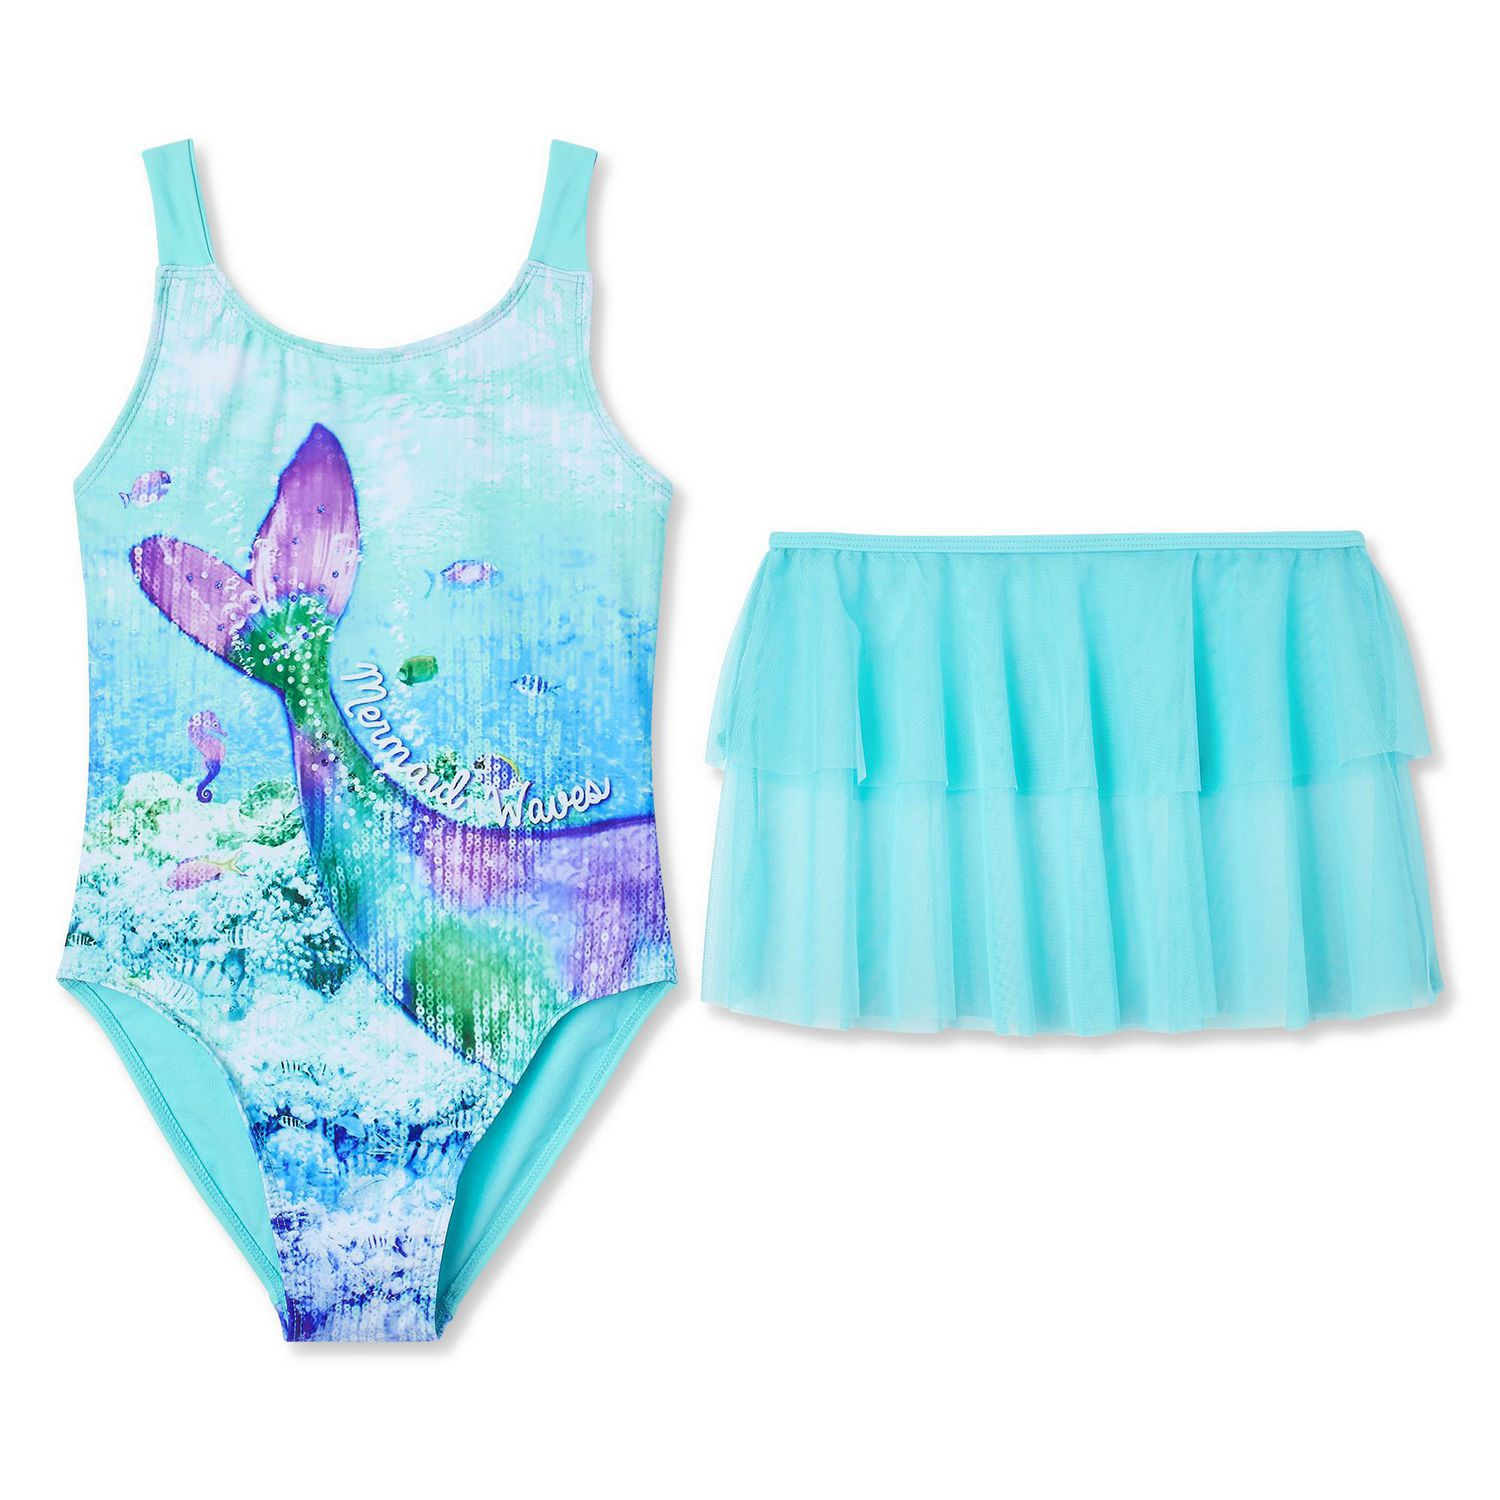 38473450c9feb George Girls' Mermaid Swim Set - image 1 of 2 zoomed image